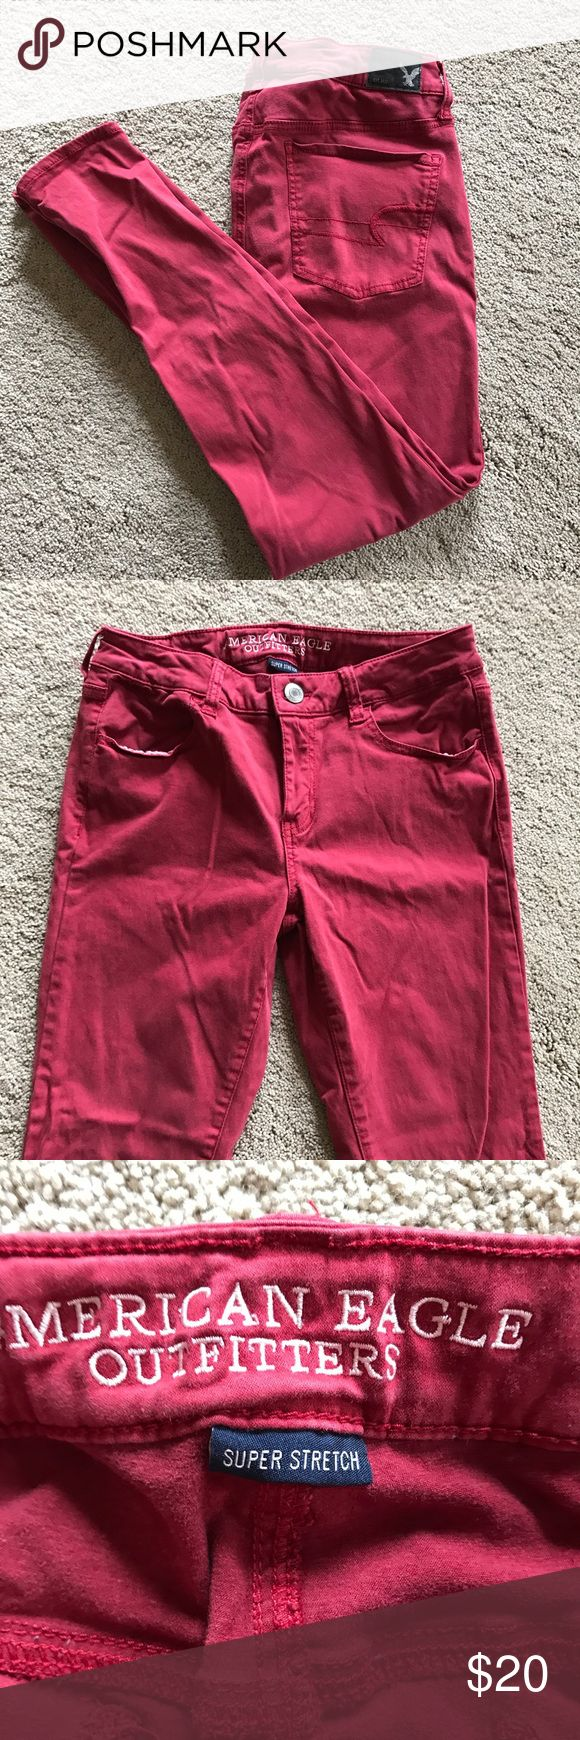 """Red skinny pants Realllly comfortable skinny """"jeans"""" they move with your body and are in great condition. Only worn a couple times American Eagle Outfitters Pants Skinny"""